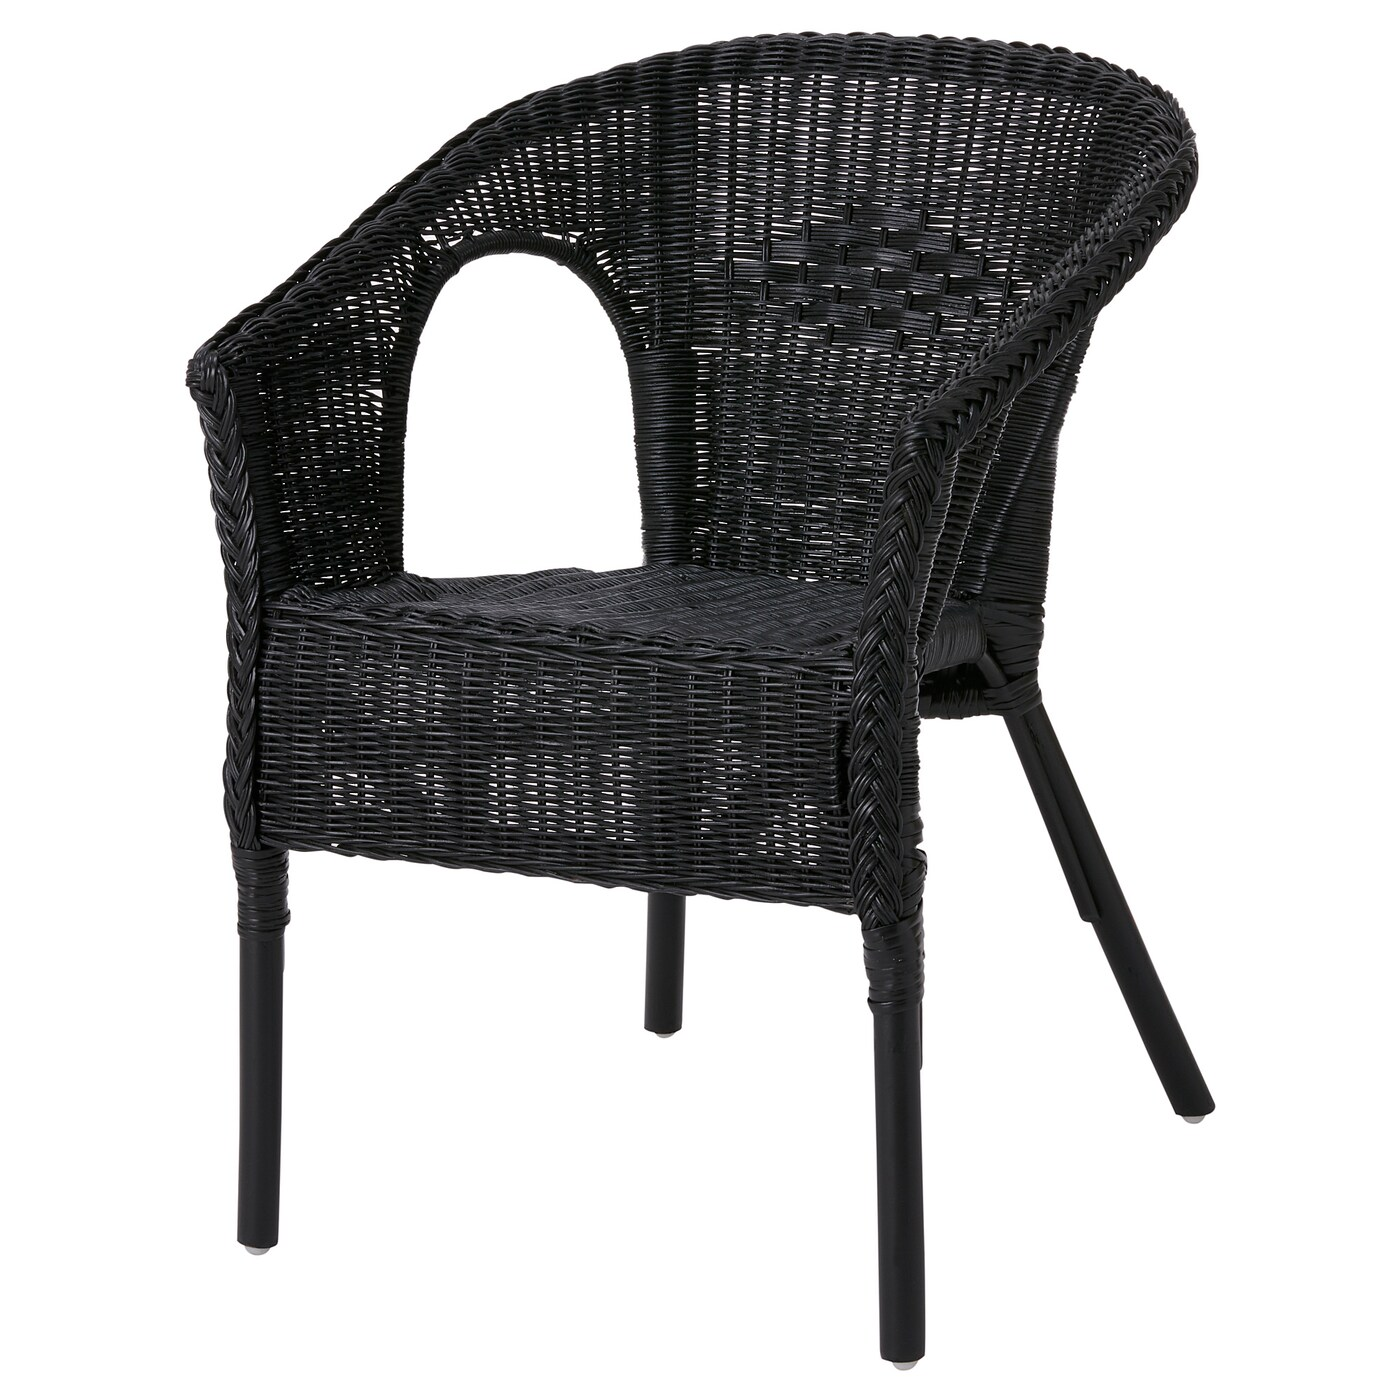 rattan chair ikea game of thrones replica and wicker chairs ireland dublin